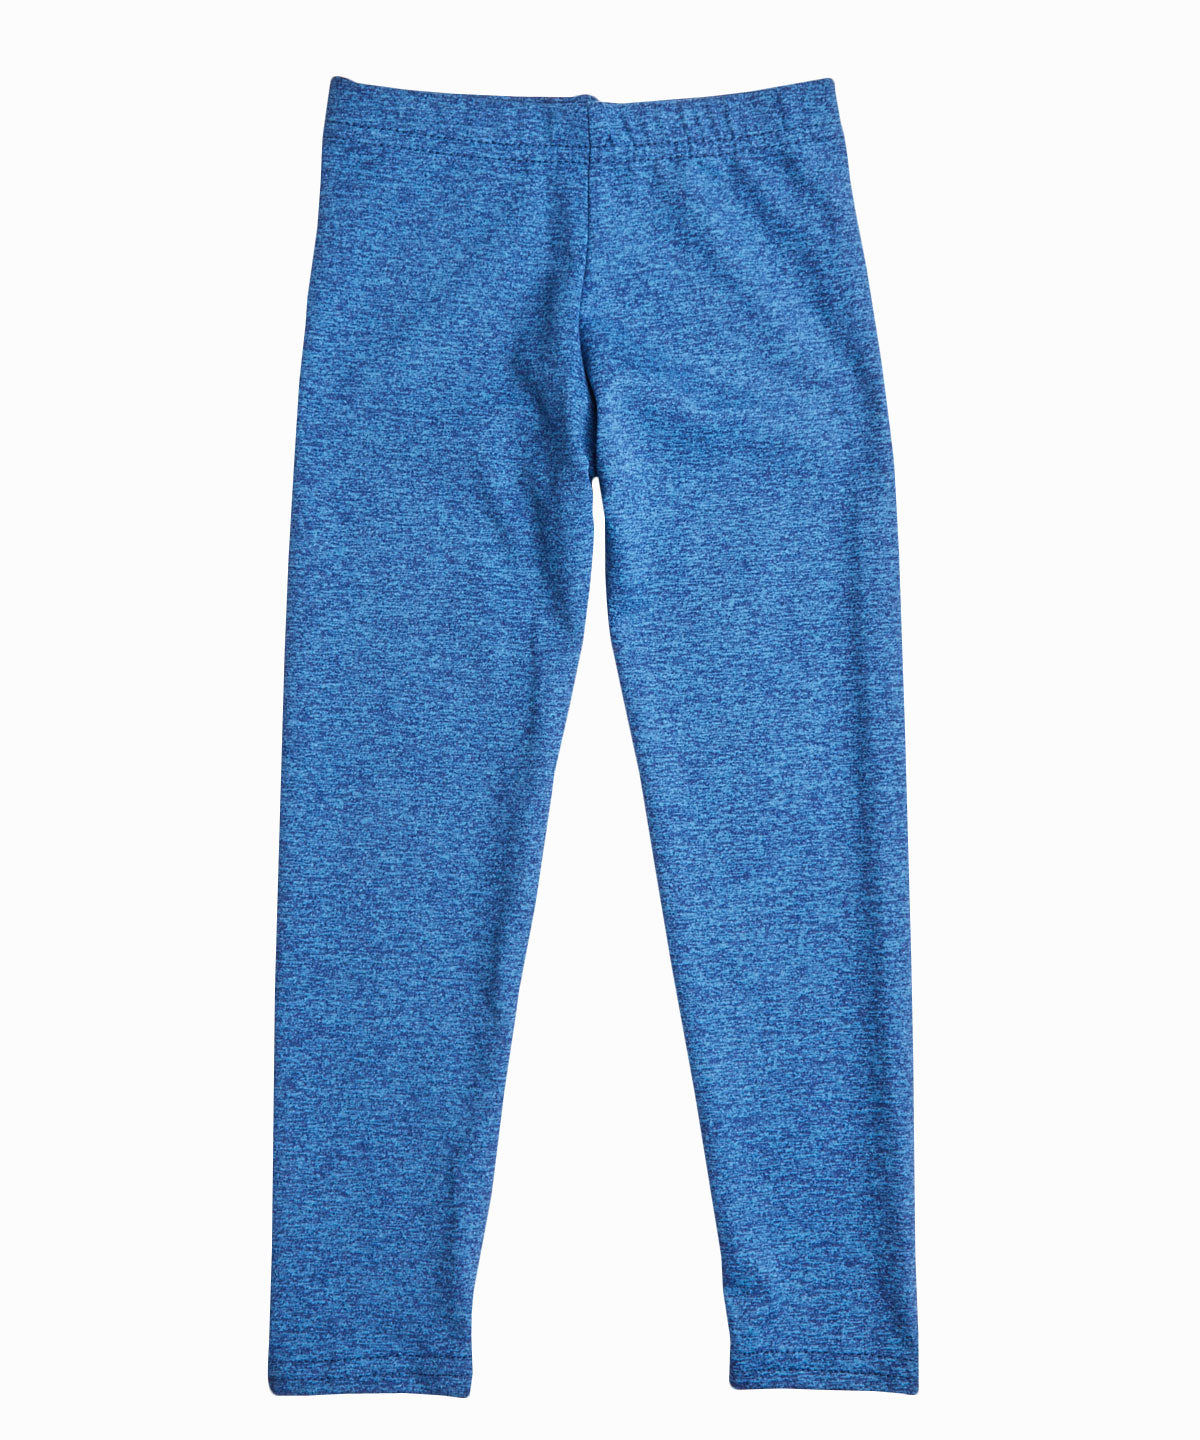 Blue Heathered Leggings